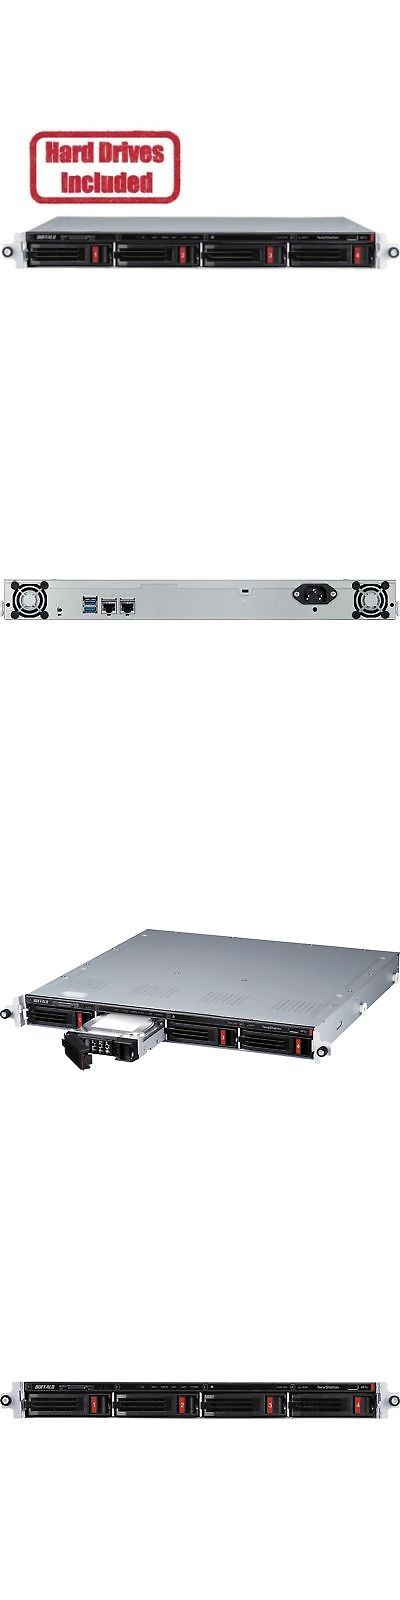 Network Attached Storage 106273 Buffalo Terastation 3410rn Rackmount 16 Tb Nas Hard Drives Included Buy It Now On Network Attached Storage Hard Drives Ebay